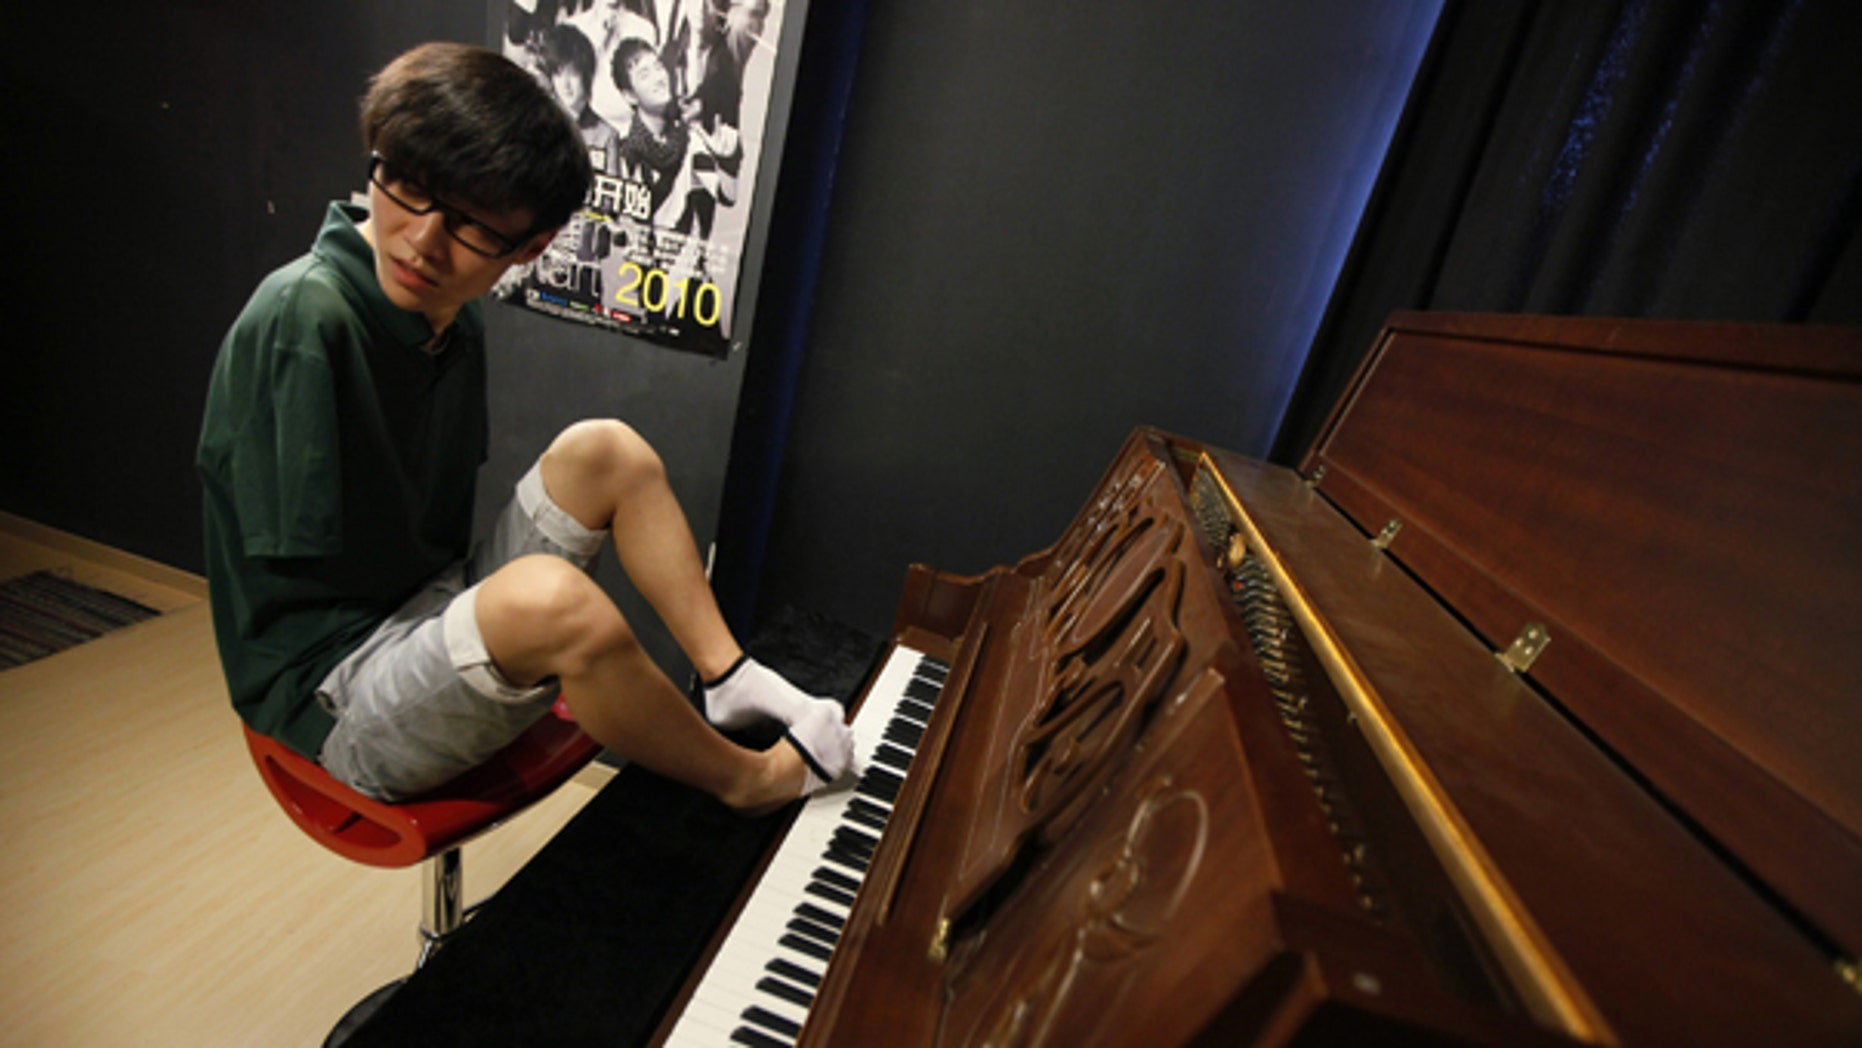 Aug. 26: Pianist Liu Wei takes off one of his socks to play piano in Shanghai. The 23-year-old's arms were amputated after a childhood accident.